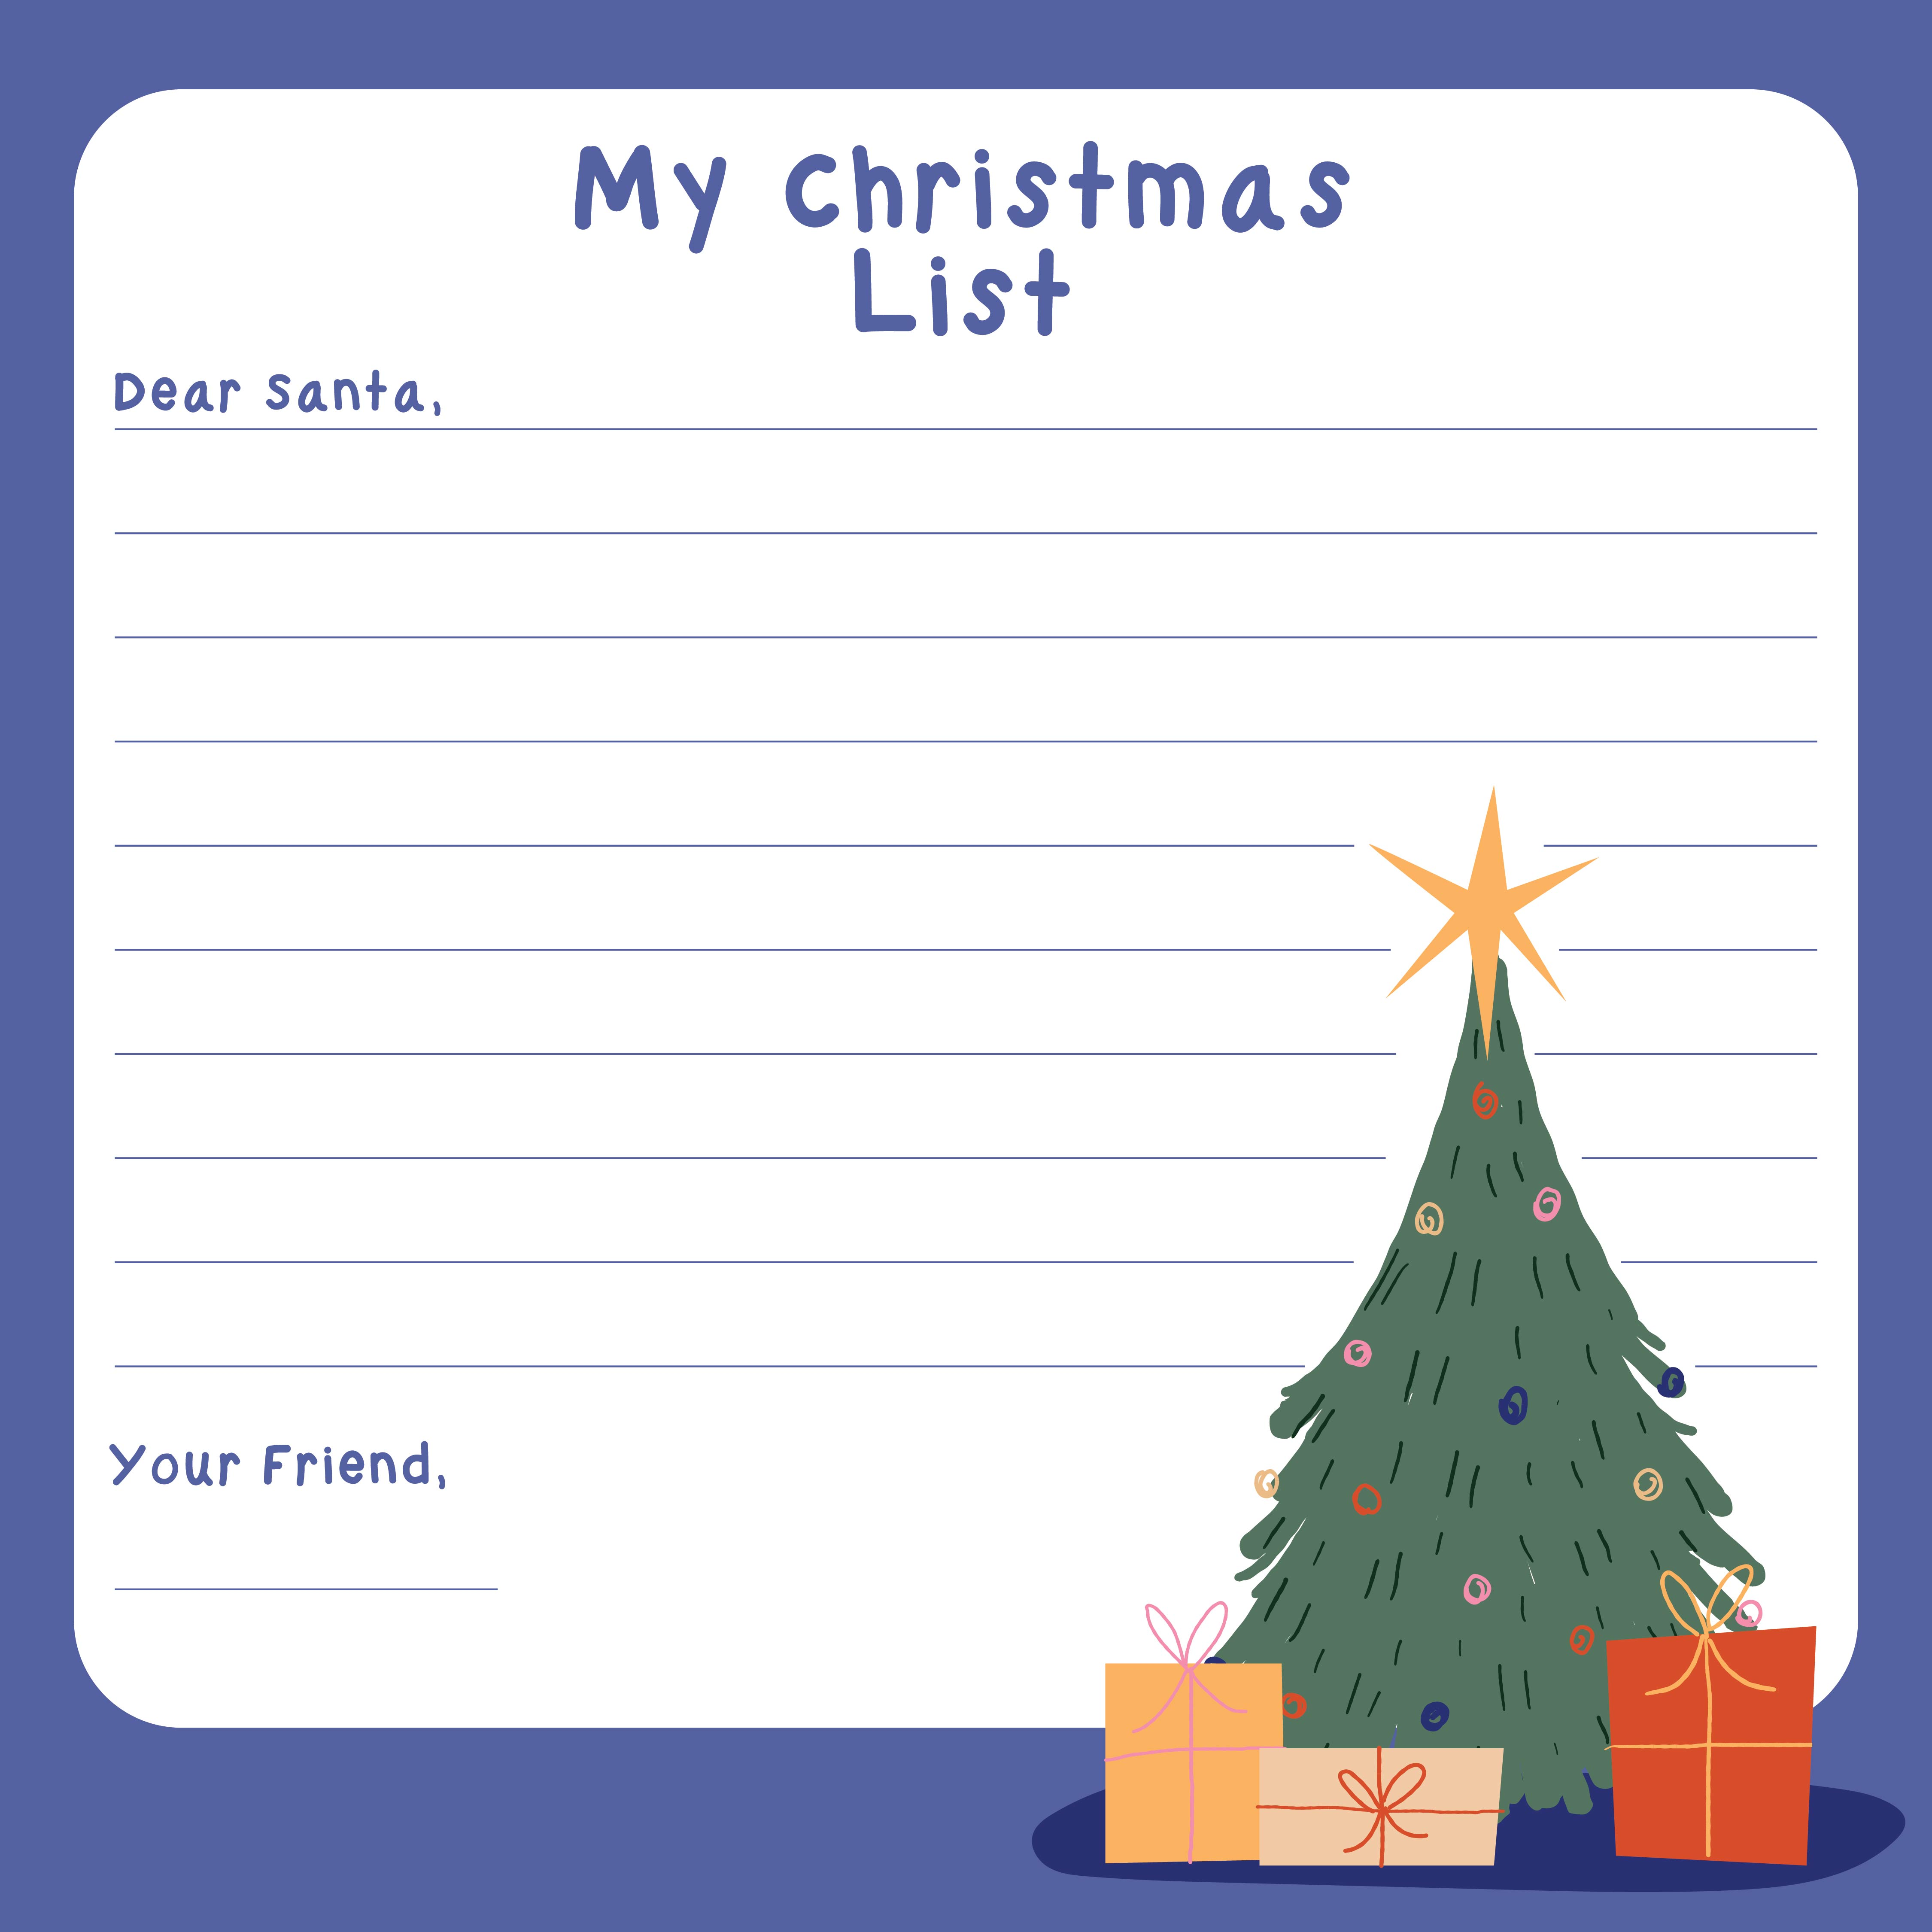 of Printable Christmas List For Santa - Santa Claus Christmas List ...